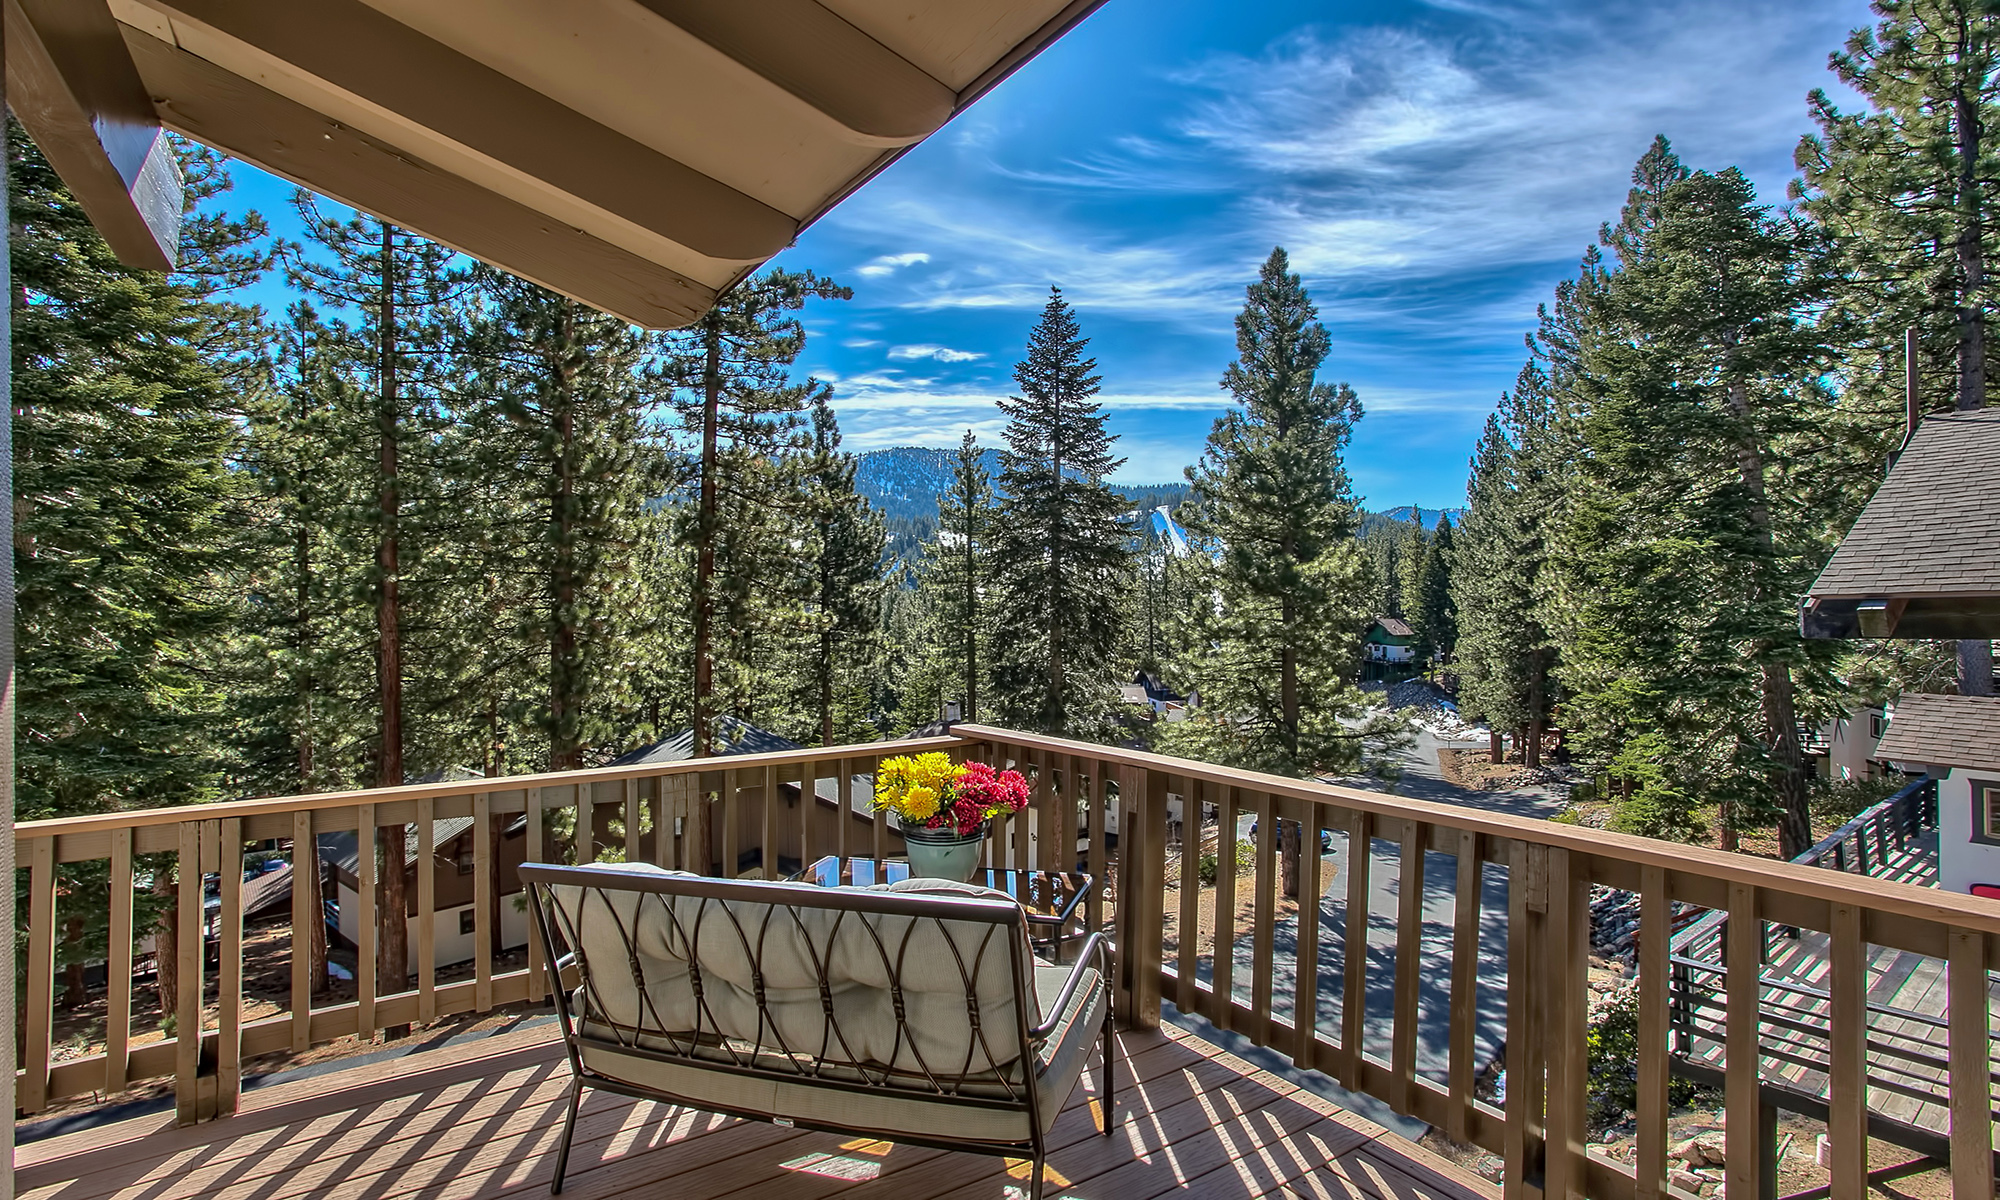 Single Family Home for Sale at Ski View Chalet 1367 Carinthia Incline Village, Nevada 89451 United States